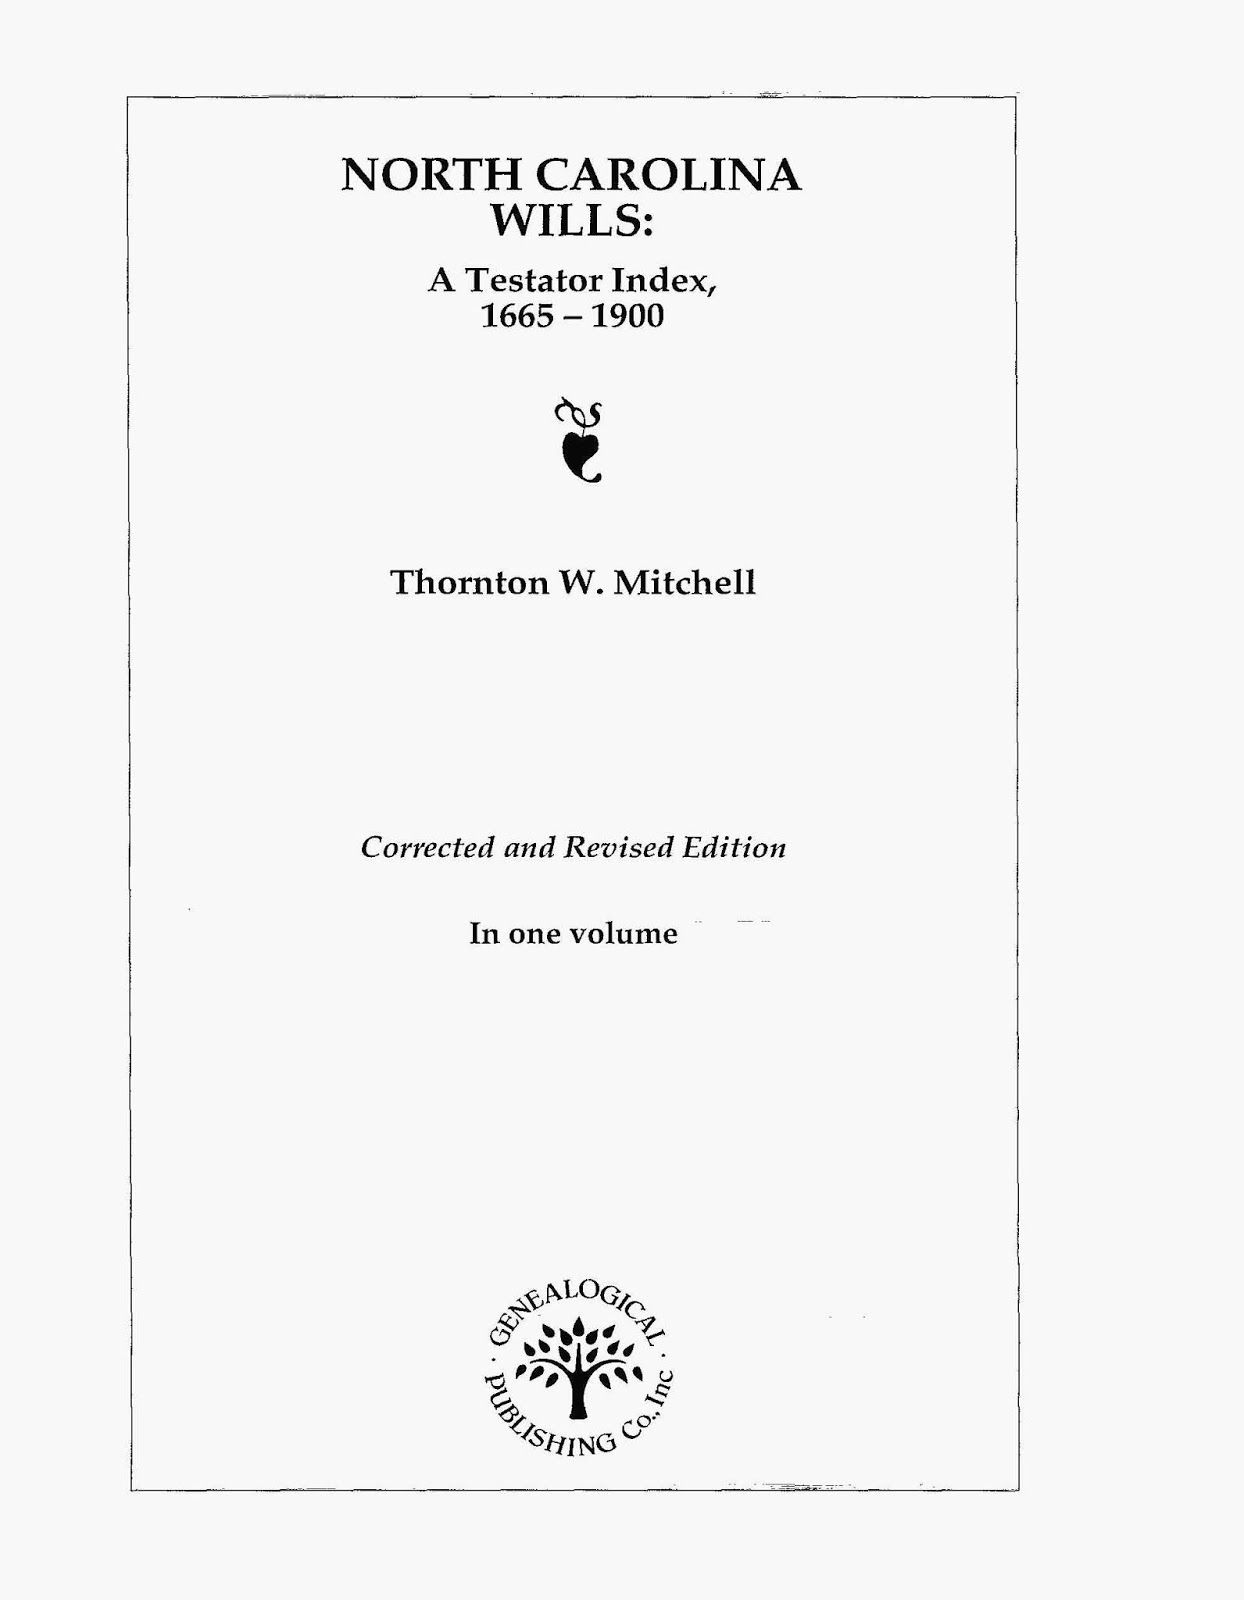 Title Page, North Carolina Wills: A Testator Index, 1996